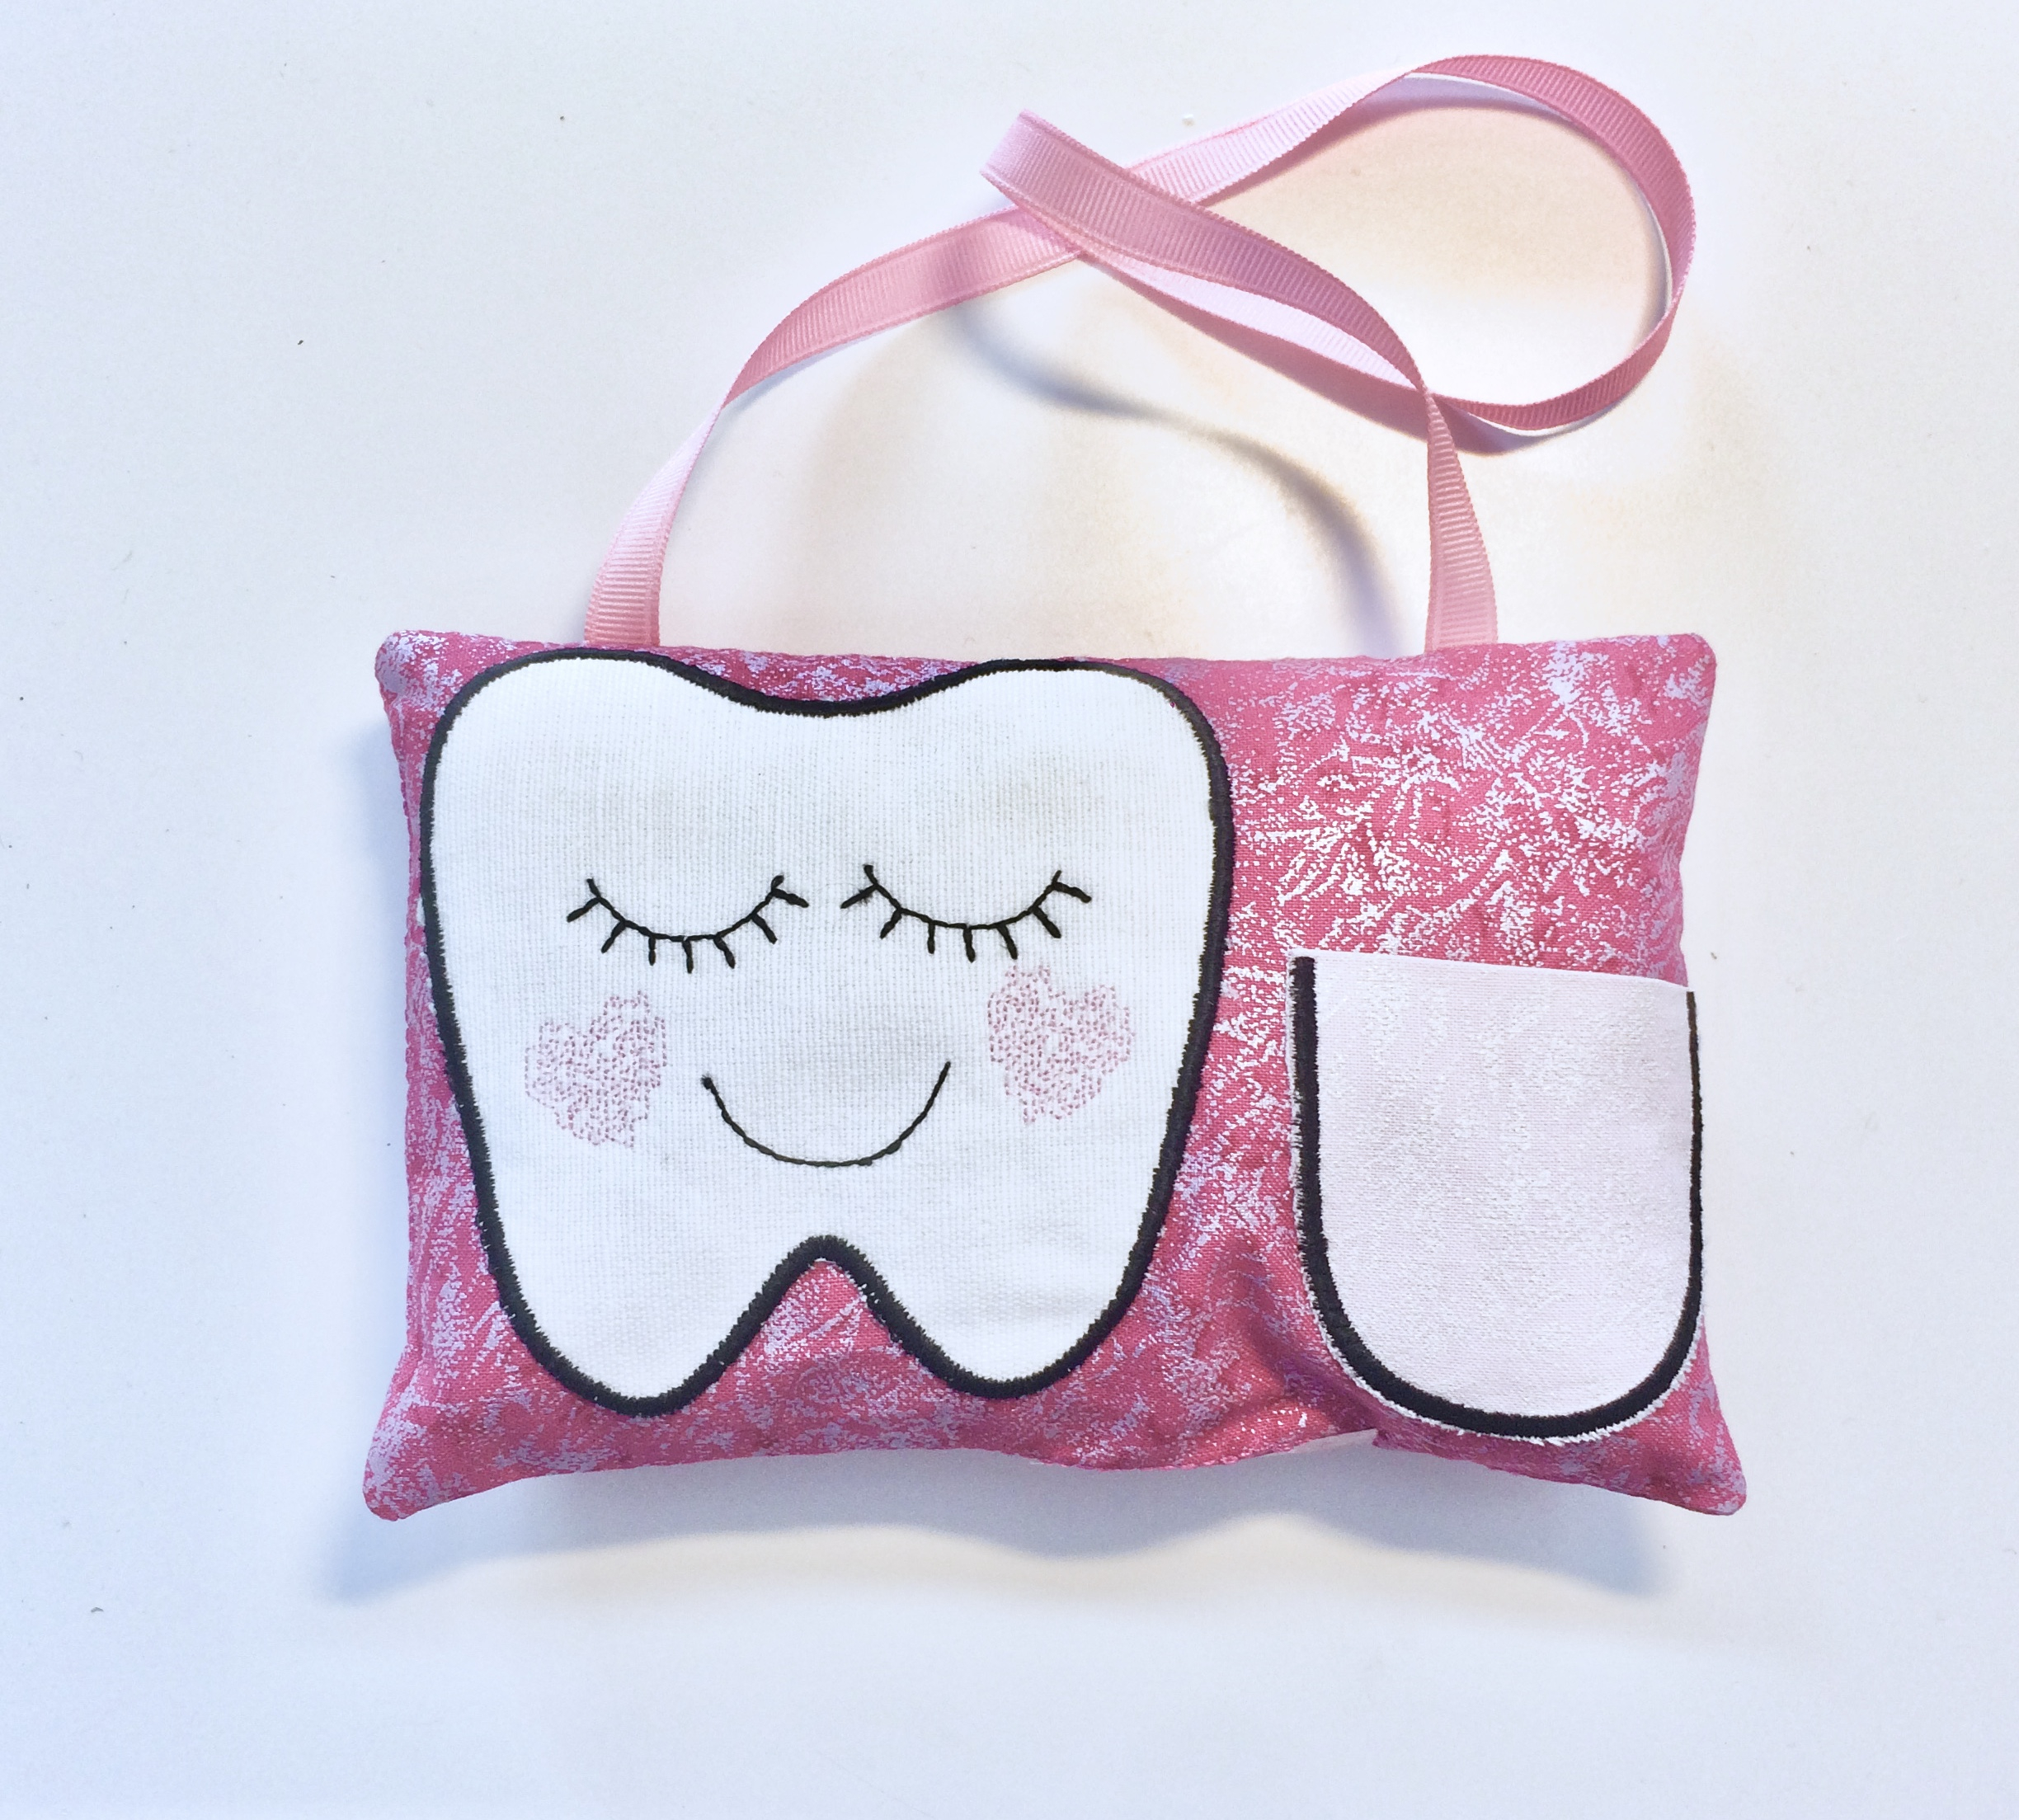 Embroidery Machine Patterns Download In The Hoop Tooth Fairy Stuffie Machine Embroidery Design Pattern5x7 Instant Download Pixie Willow Patterns Ith Tooth Fairy Pillow